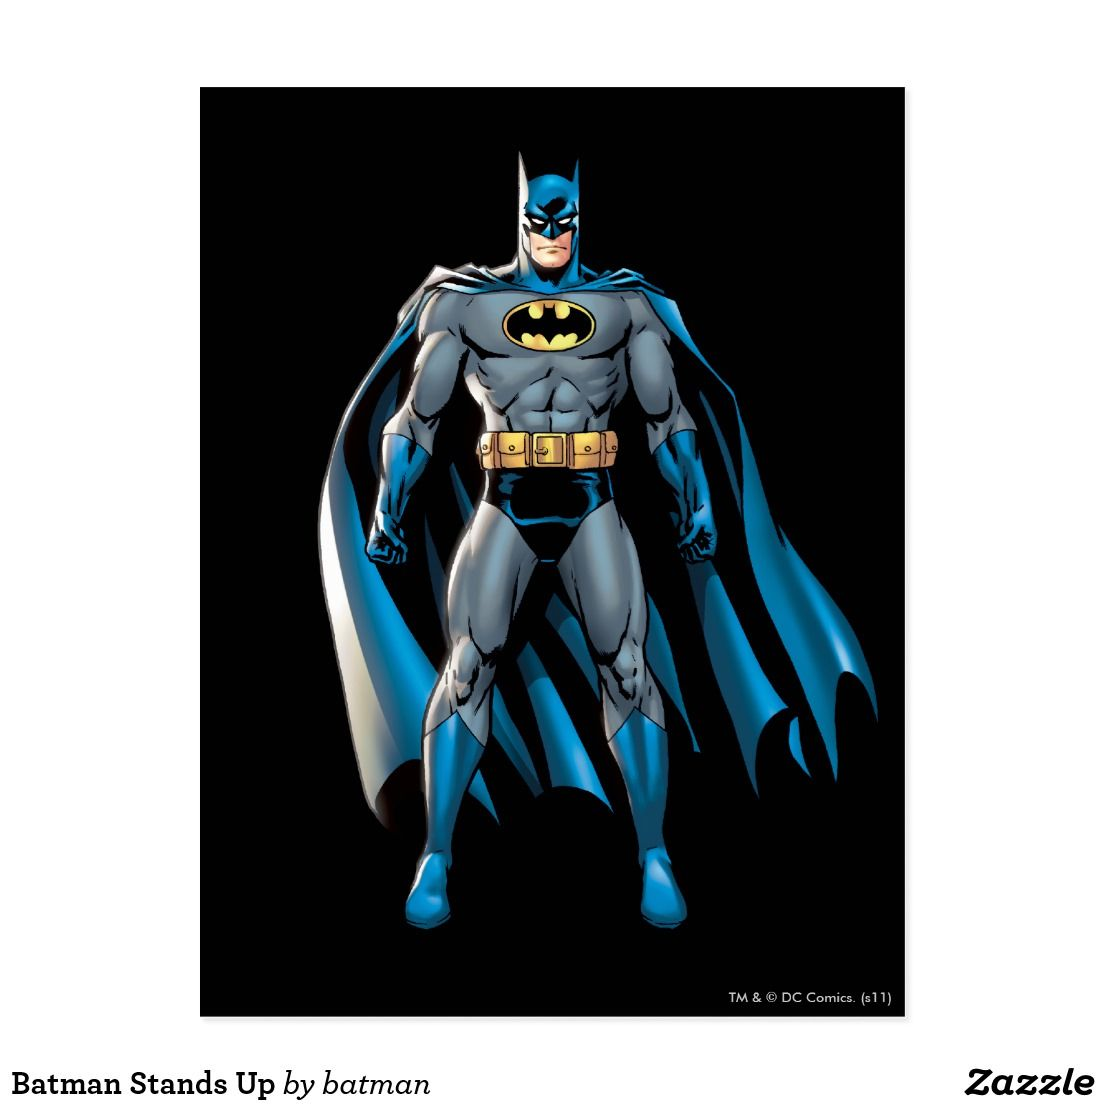 Batman stands up postcard unique superhero designs to personalize as a gift for yourself friends and families perfect unique ideas for all birthdays and